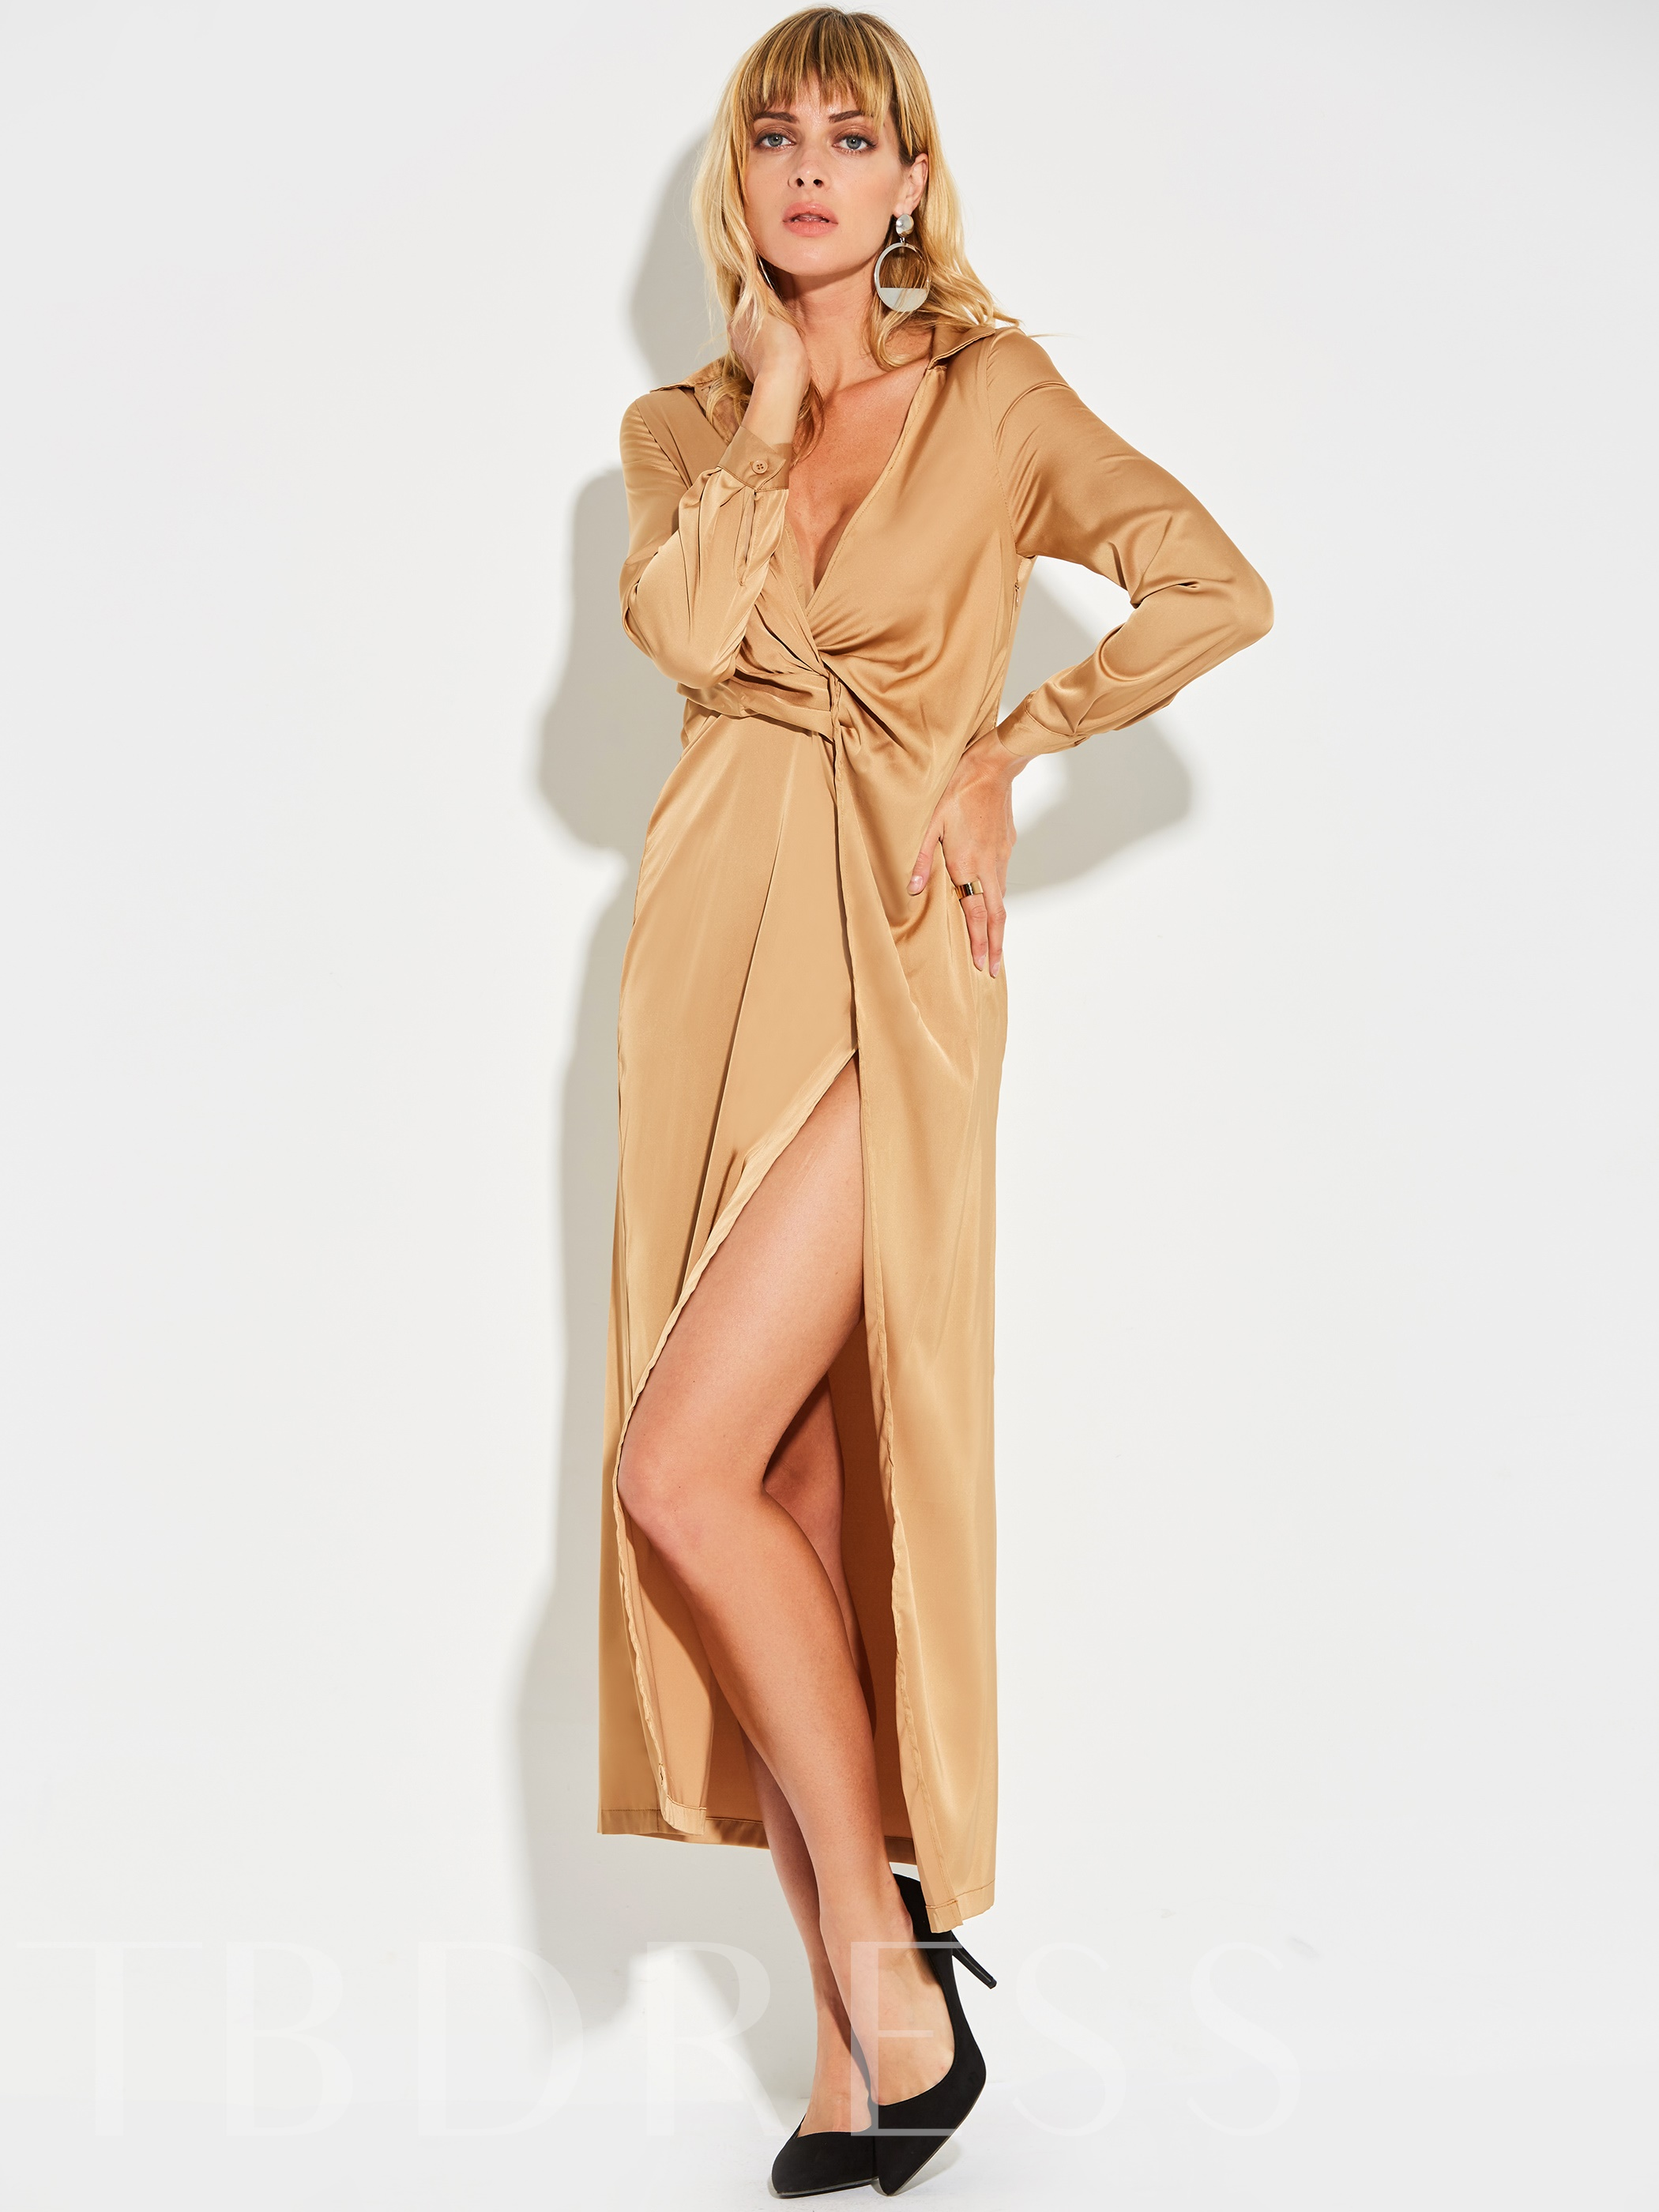 Khaki Long Sleeve Ruffled Women's Maxi Dress, 12890633